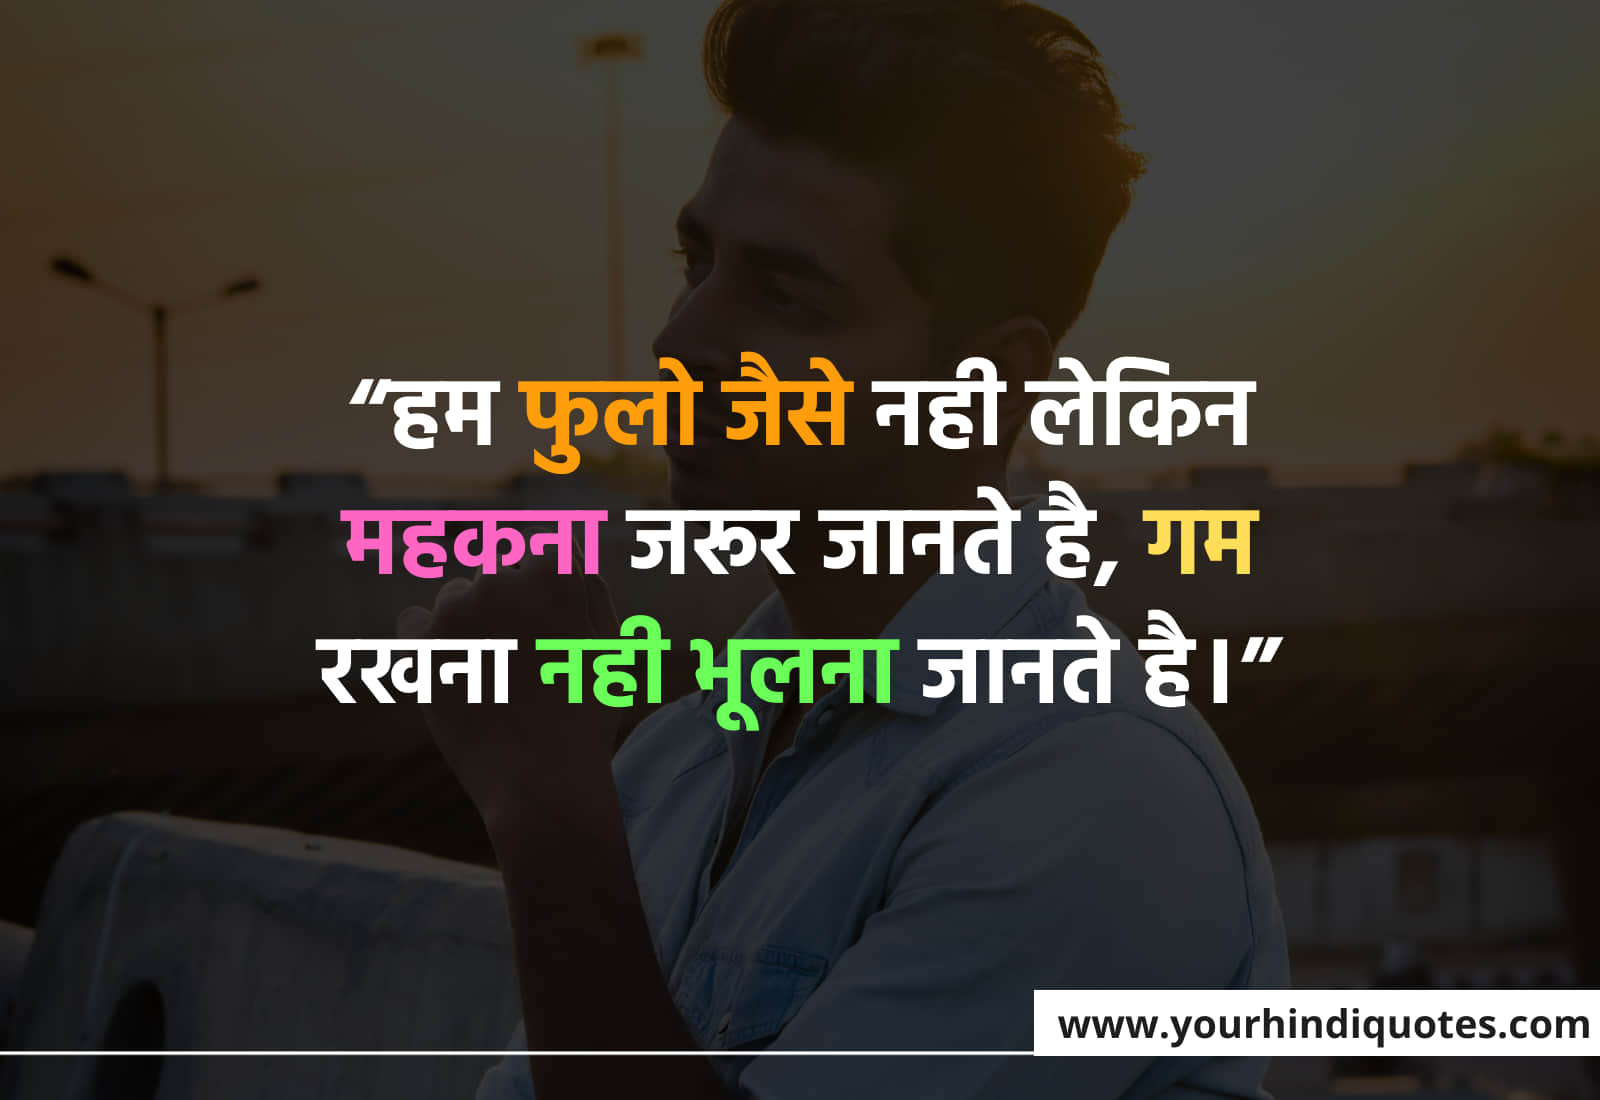 Hindi Good Night Quotes For Her